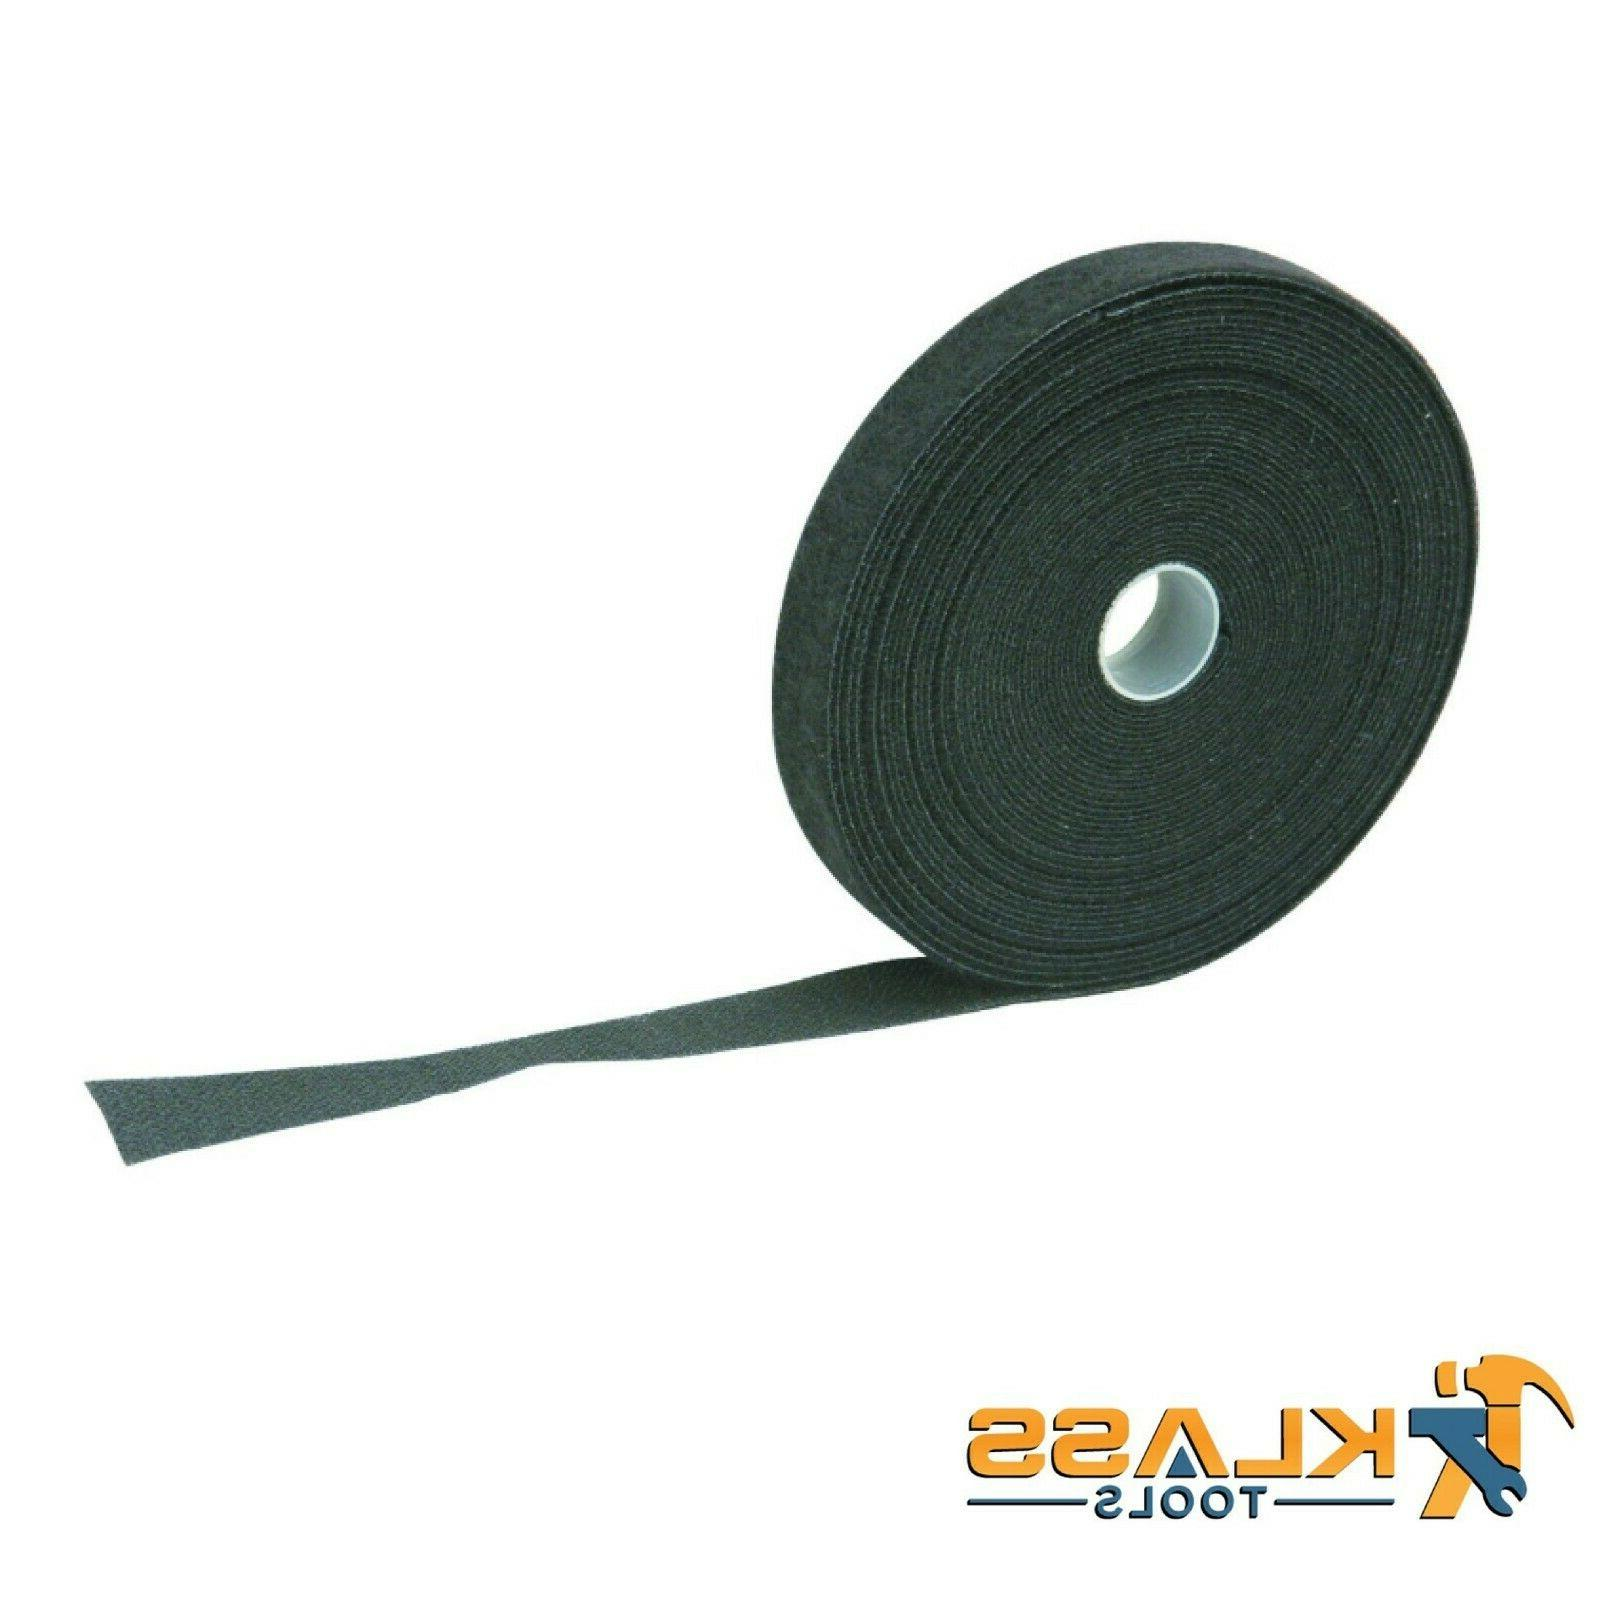 35 ft roll black cable ties